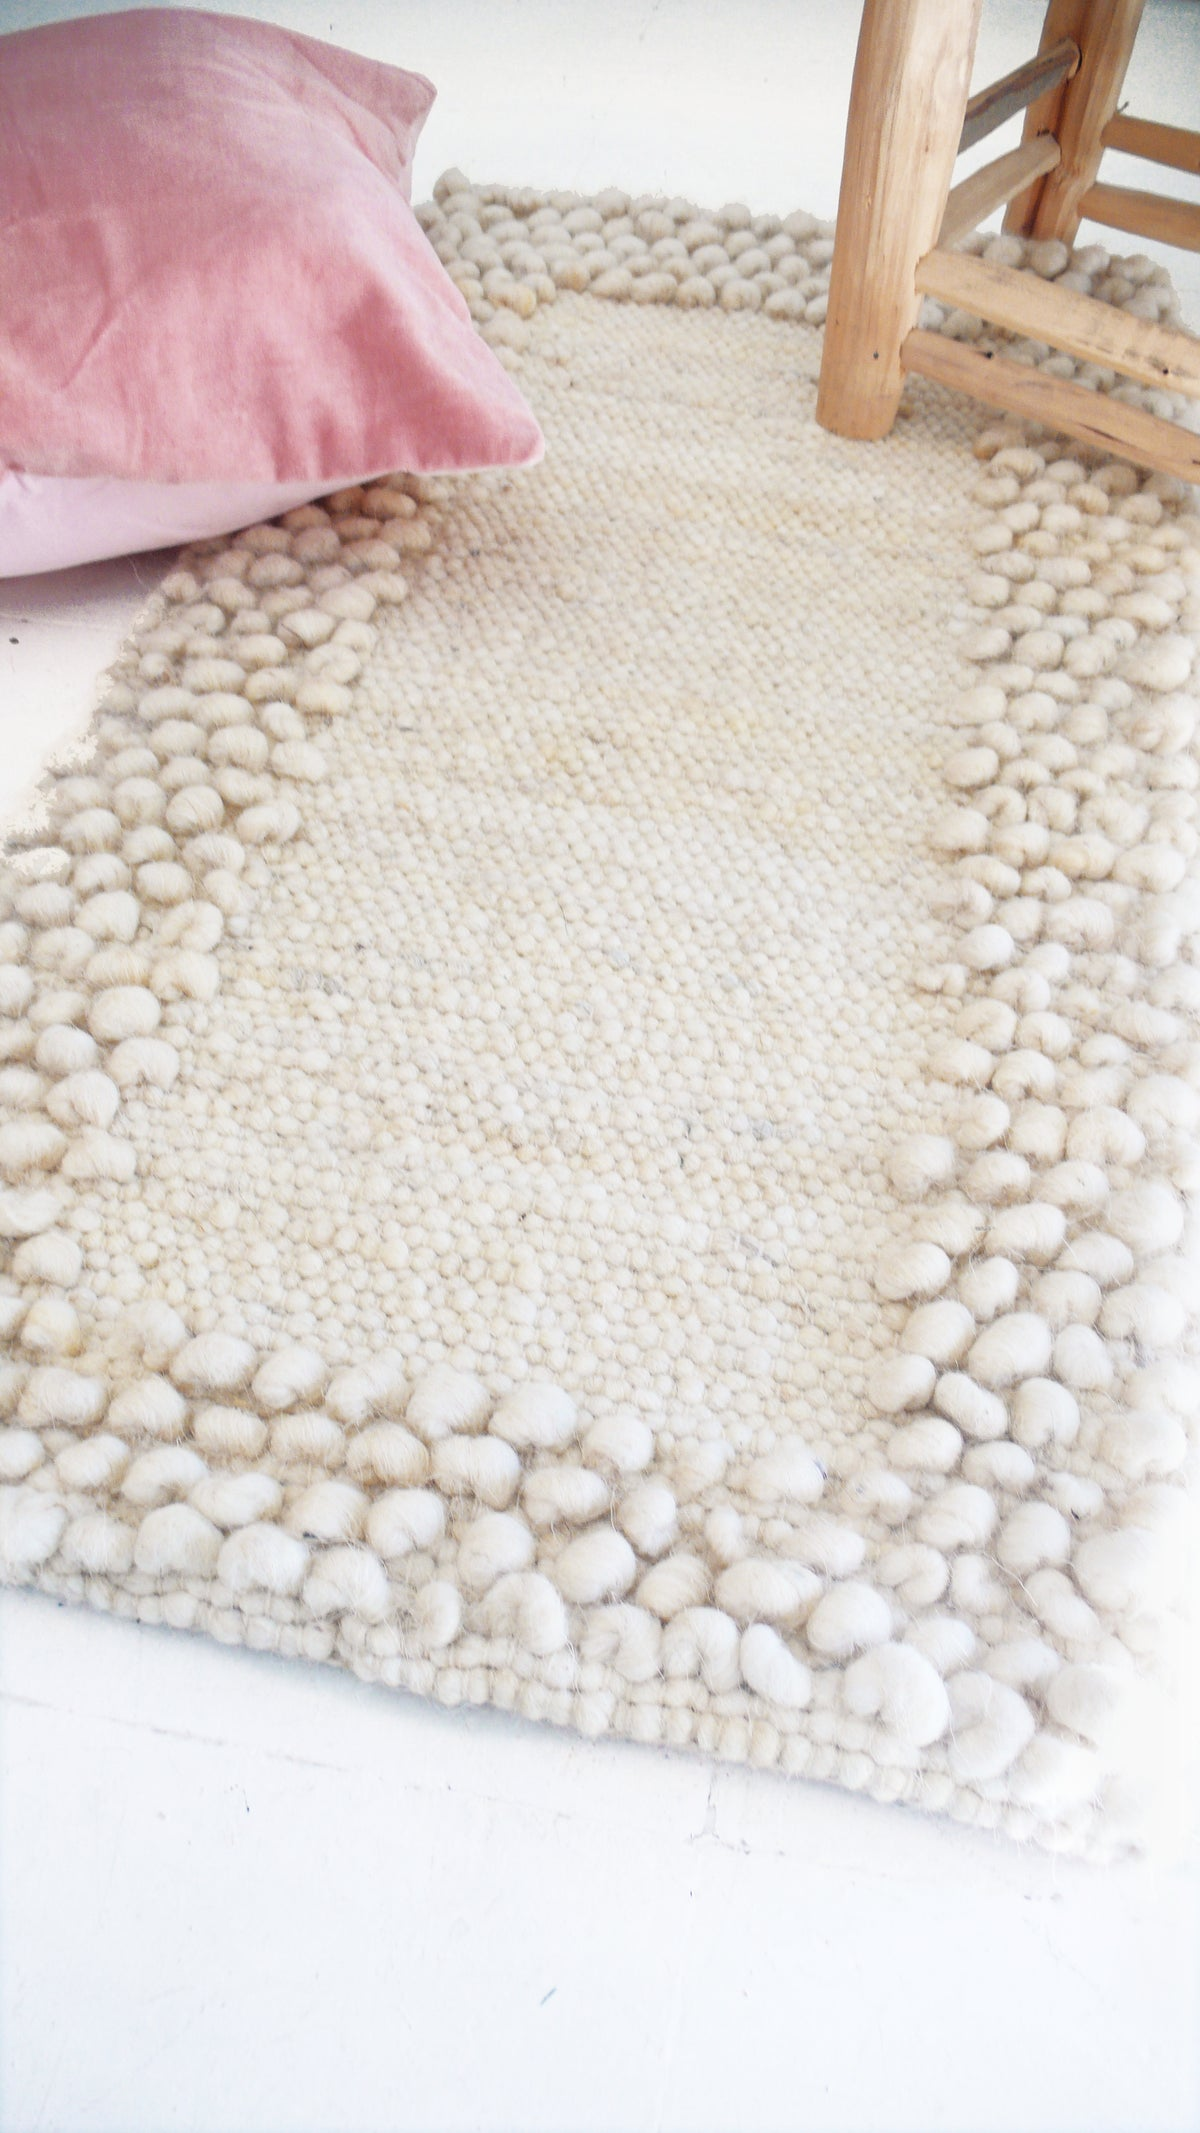 Image of Handwoven Wool Rug Ecru - Natural color undyed wool - Frame